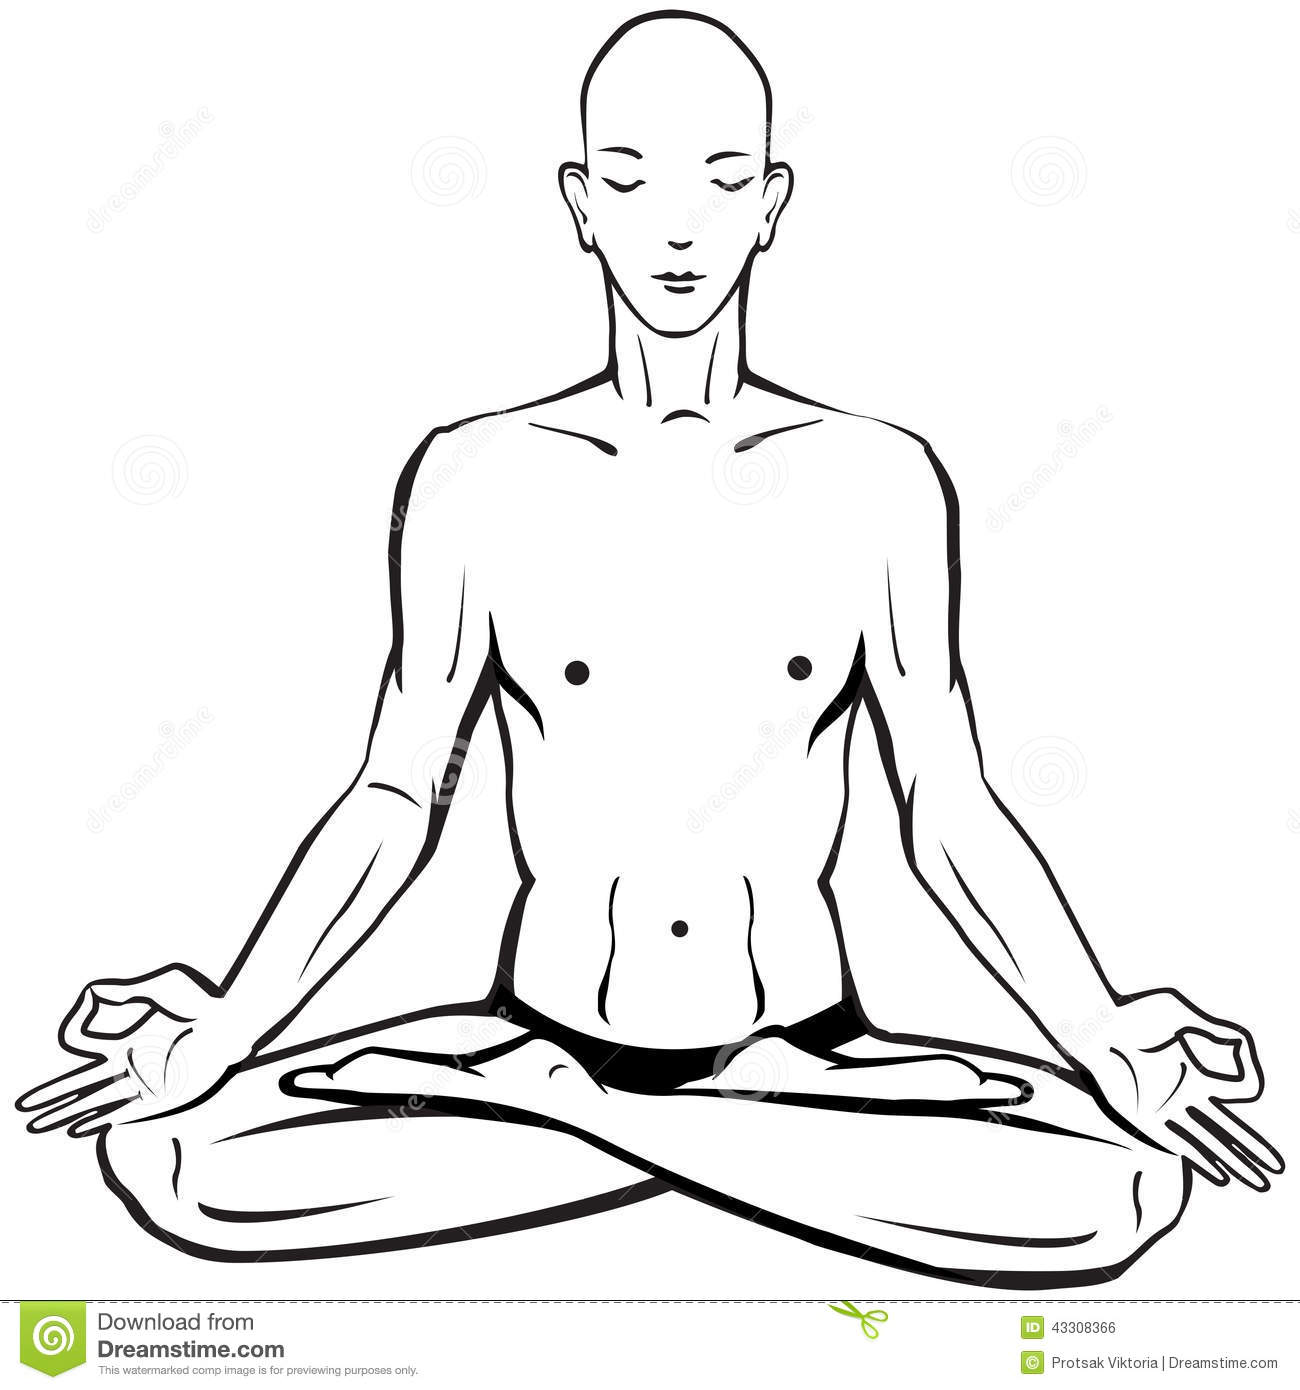 Line Drawing Yoga Pose : Man in meditating and doing yoga poses stock vector